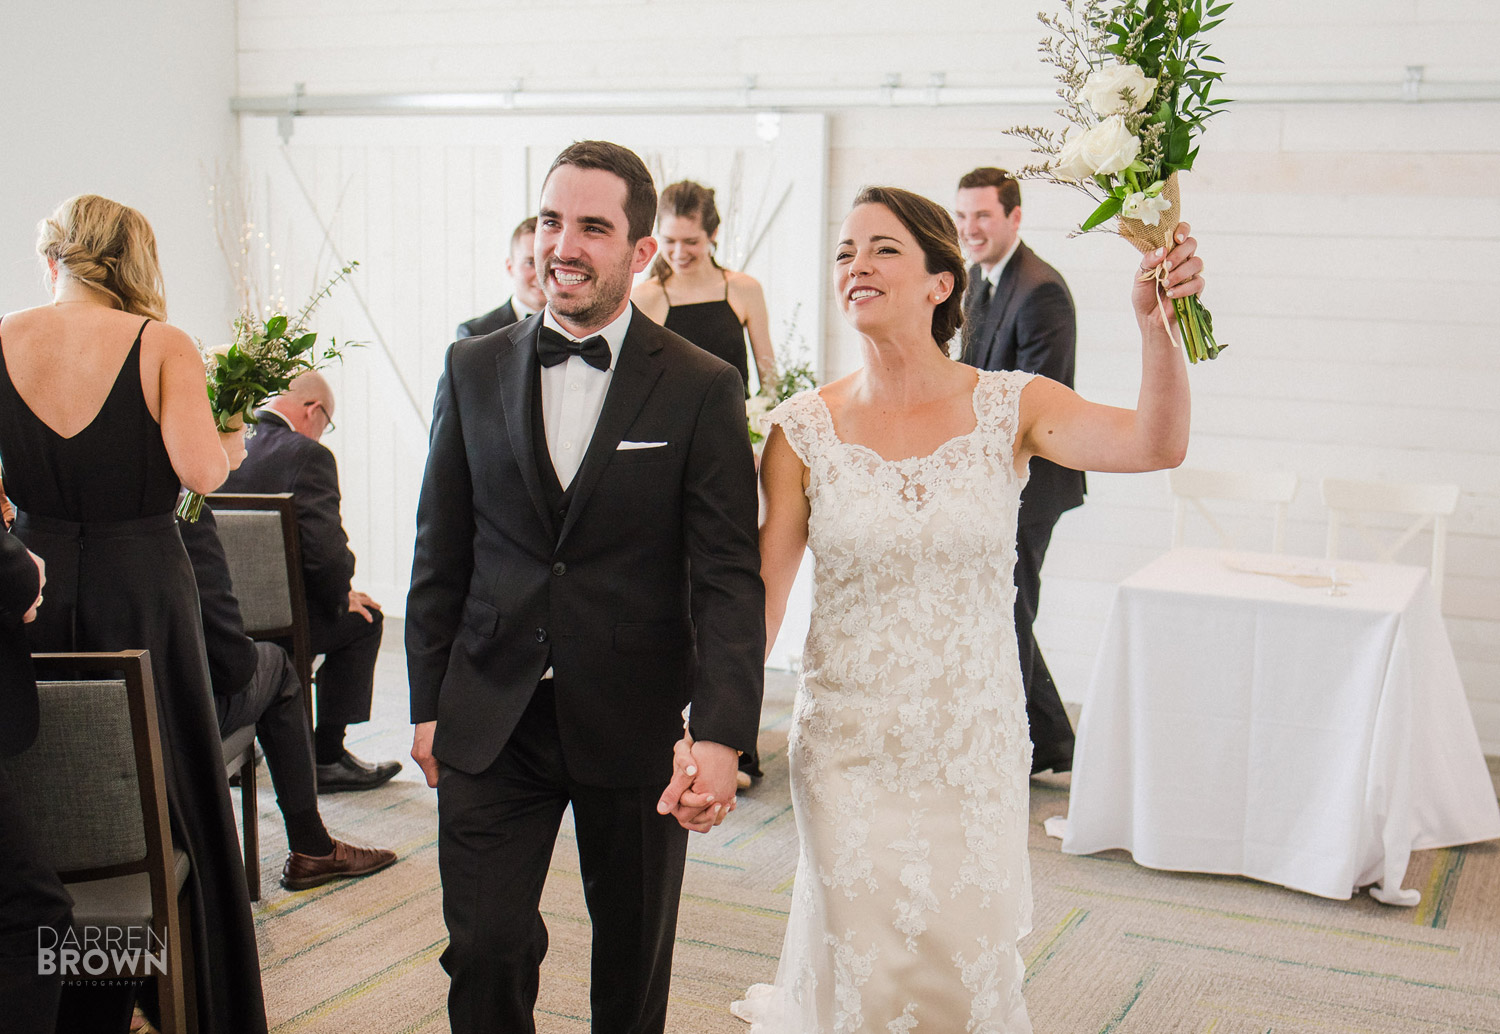 bride and groom celebrate after wedding ceremony